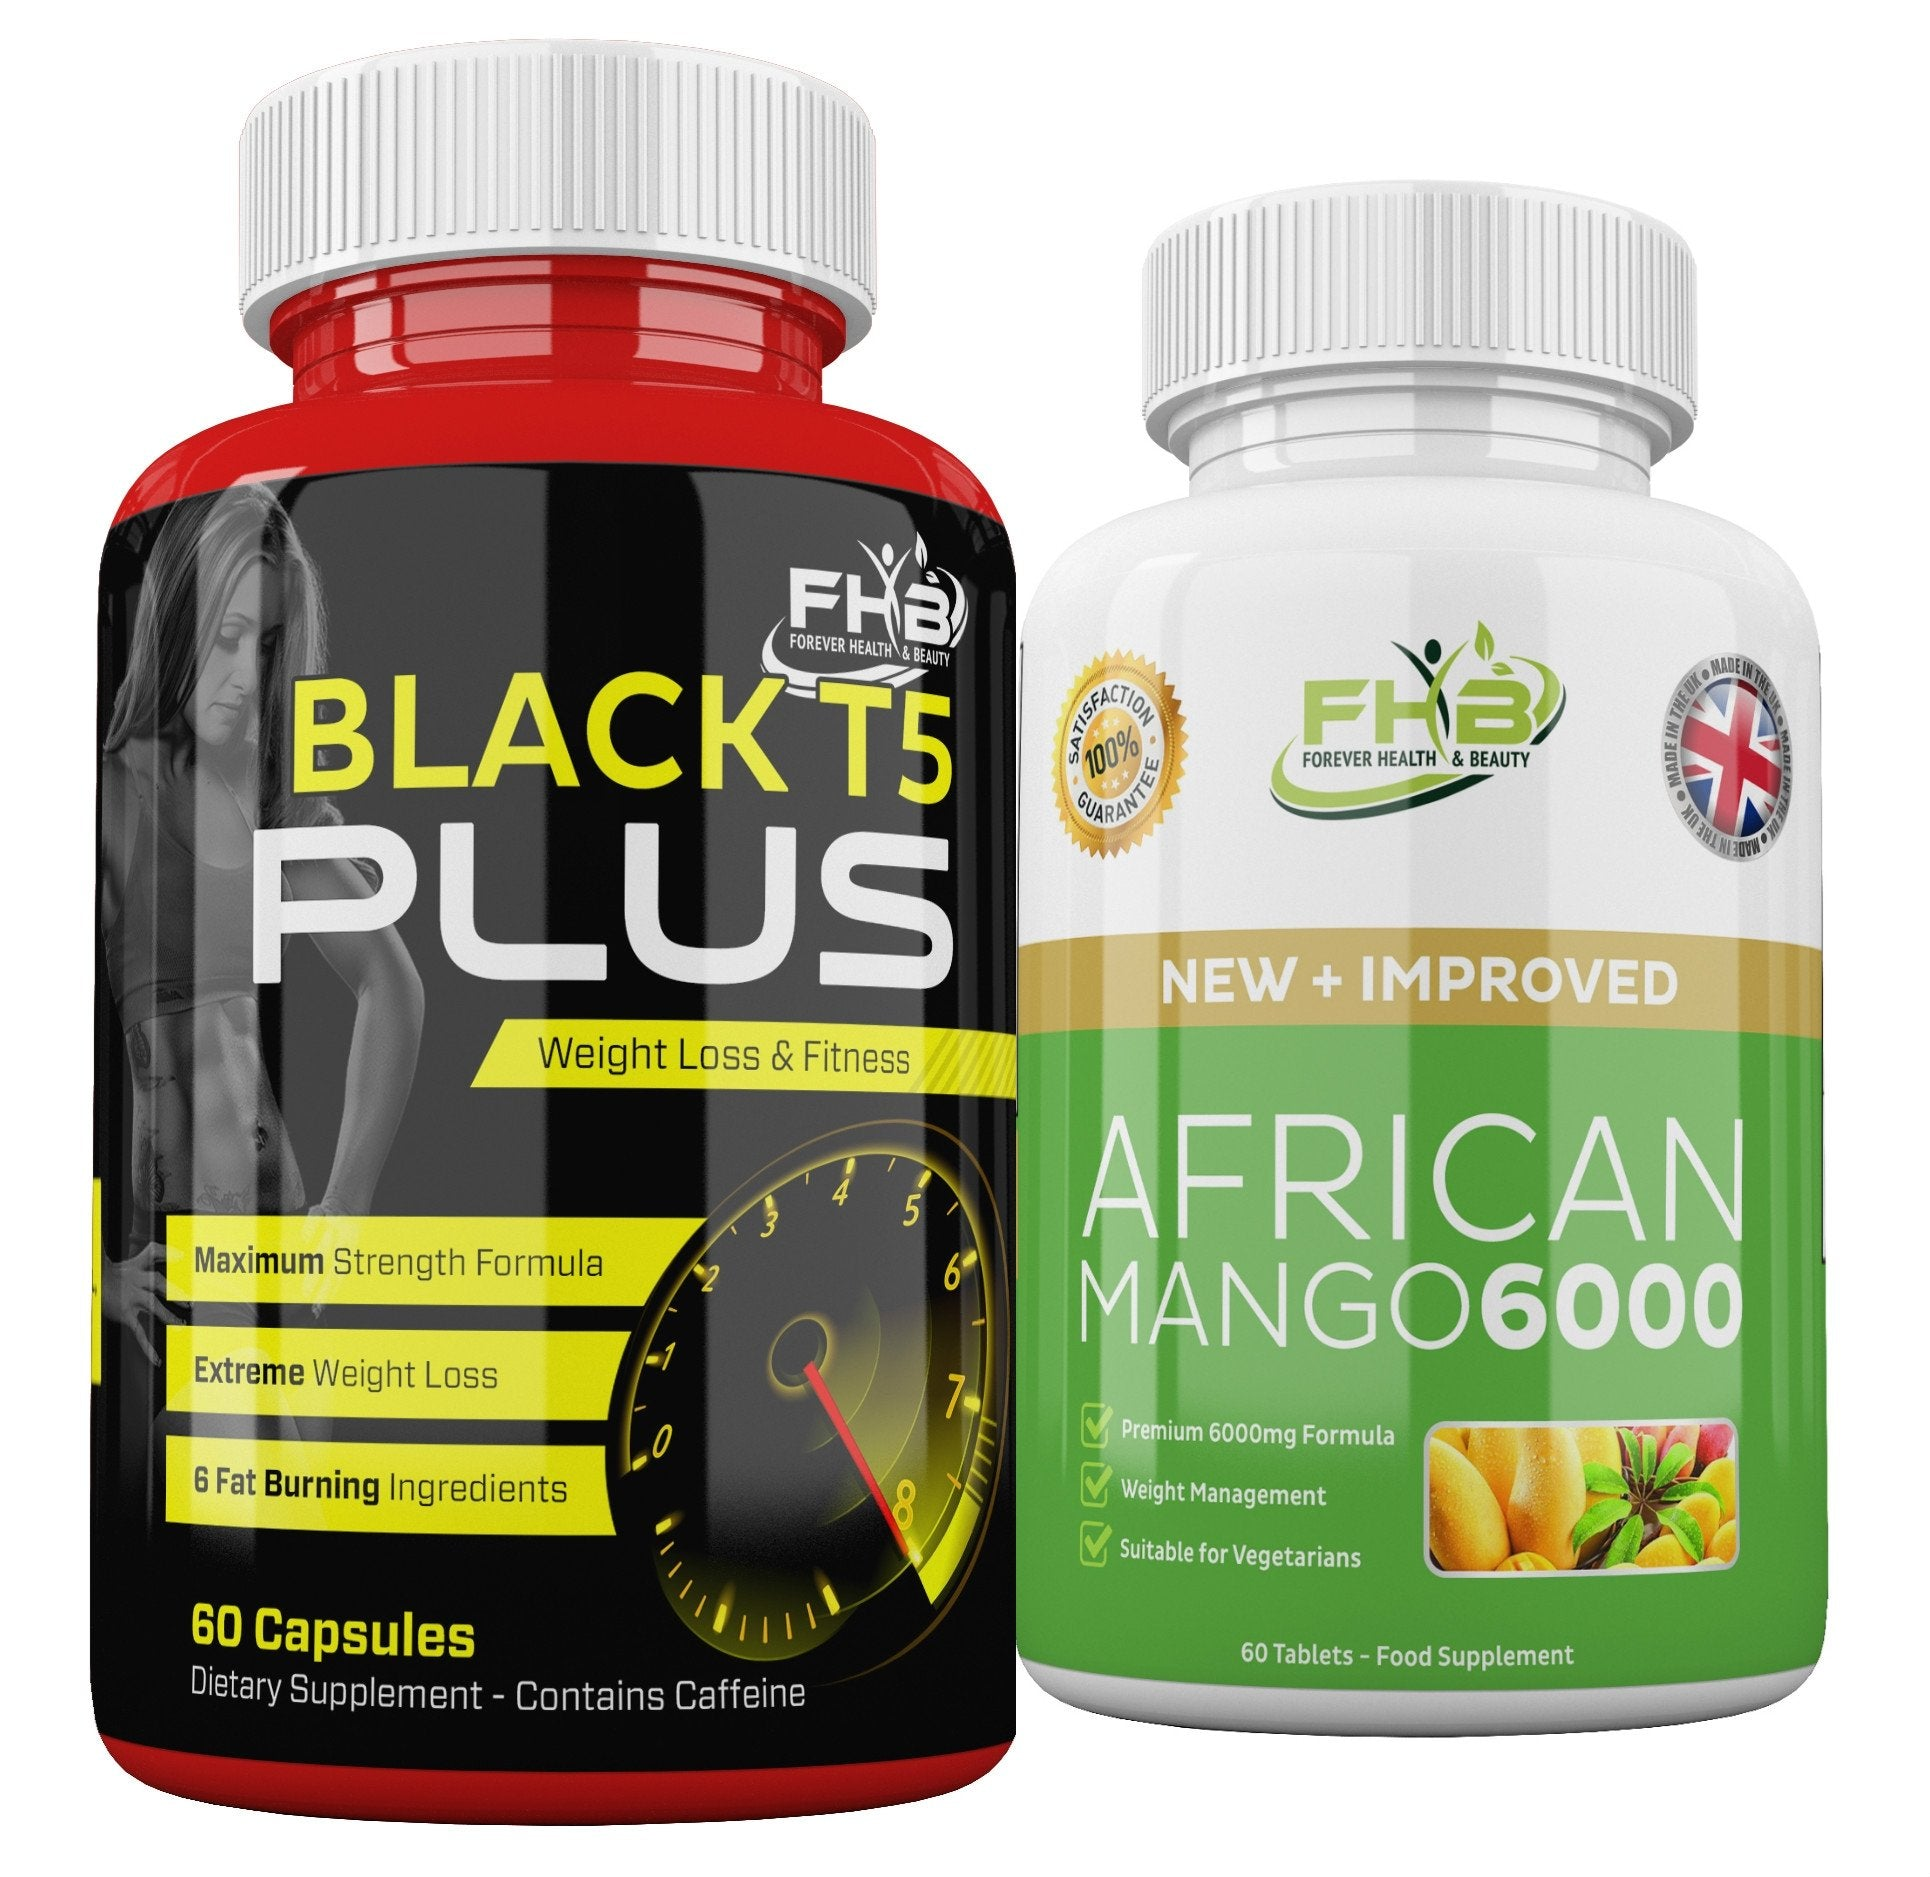 Black T5 Plus & African Mango 6000 Weight Loss & Fitness Combo - 120 Capsules